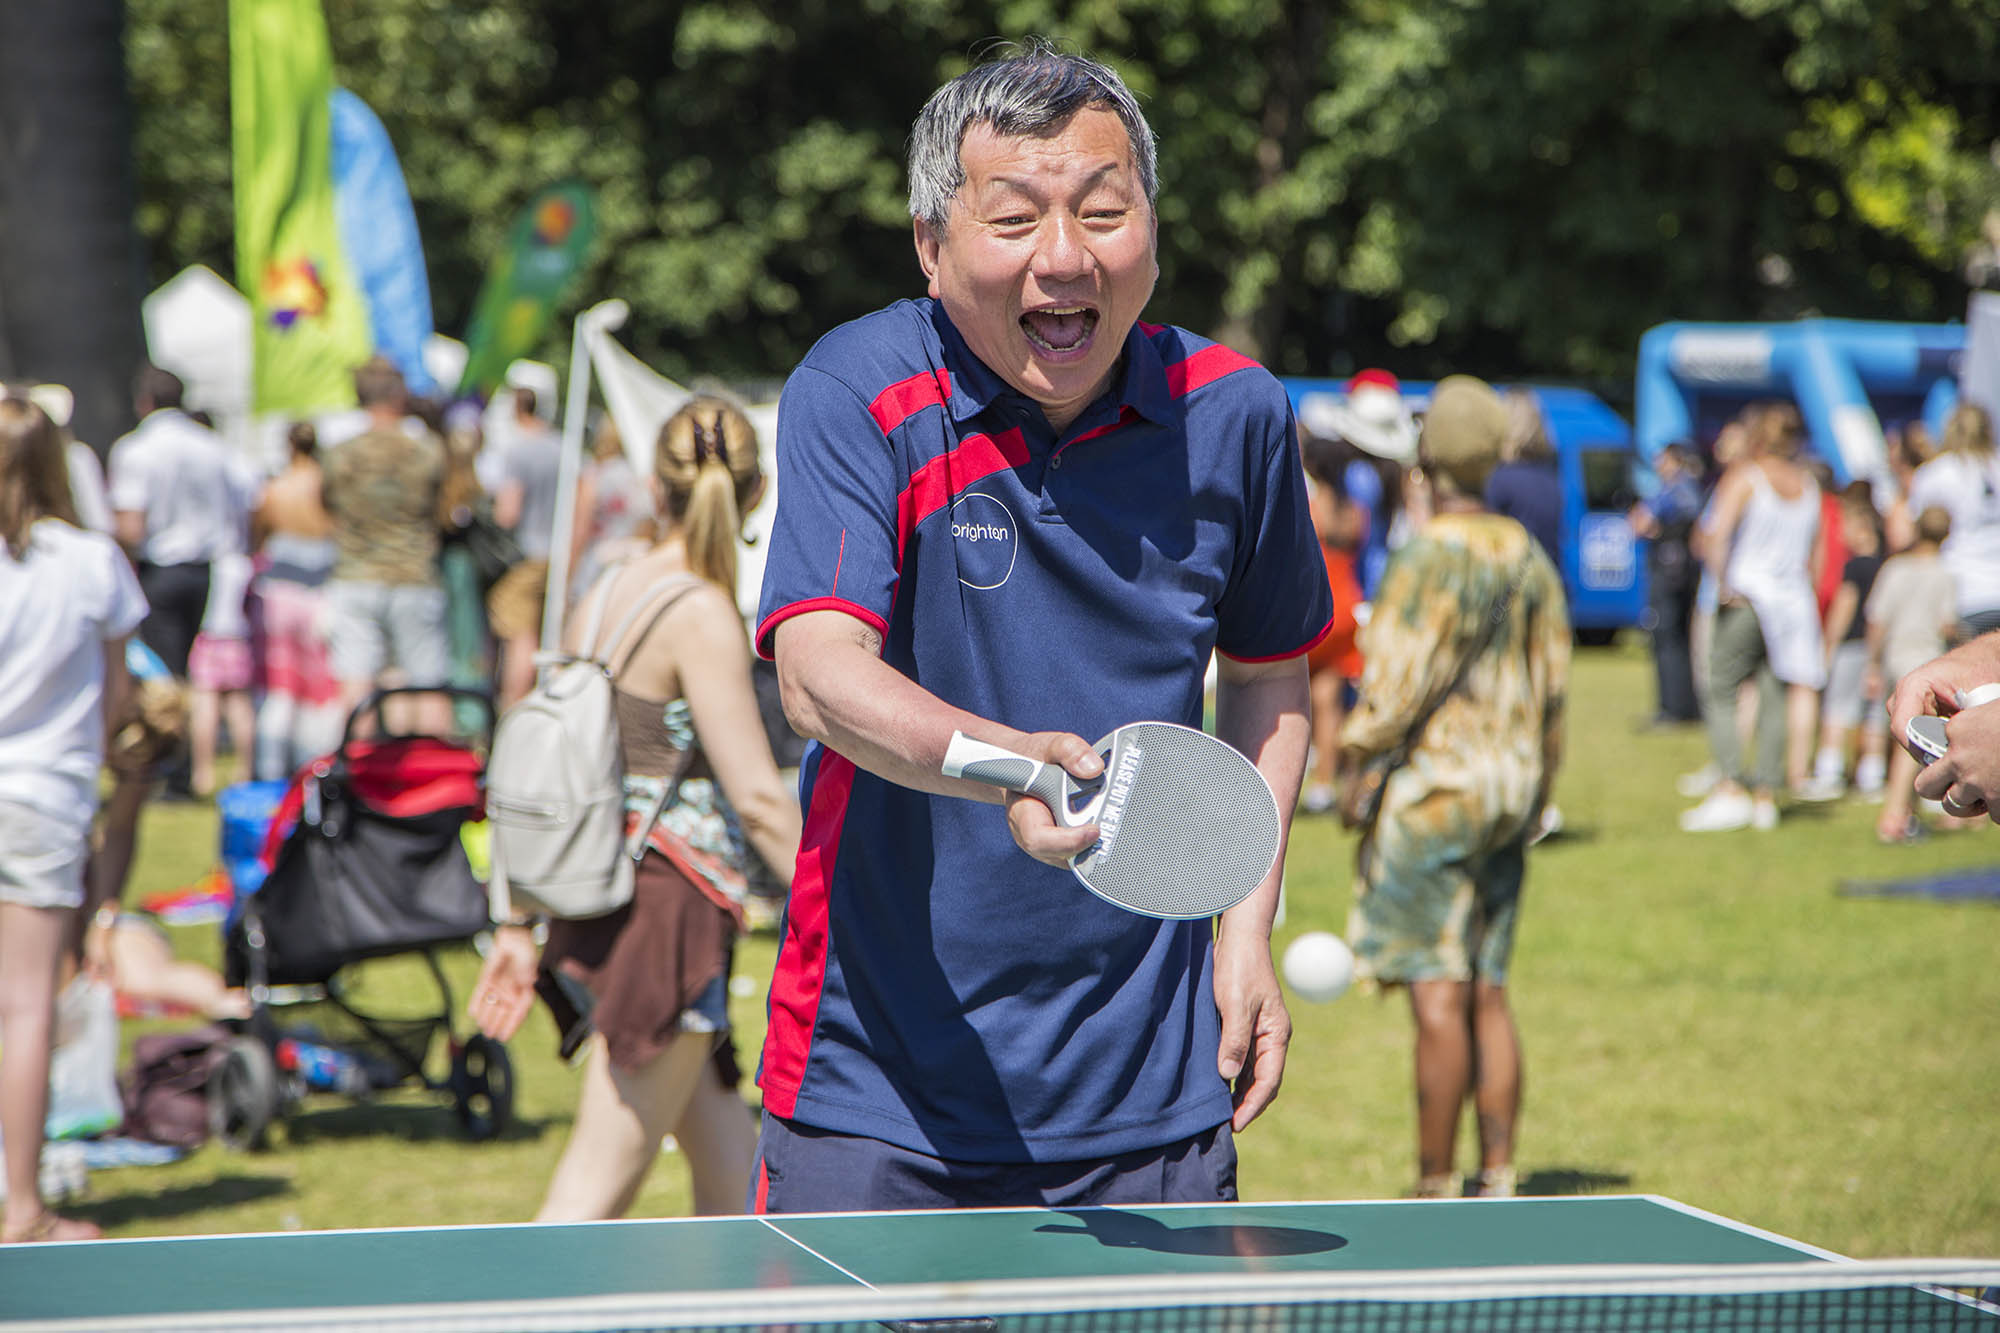 smiling man playing table tennis outdoors